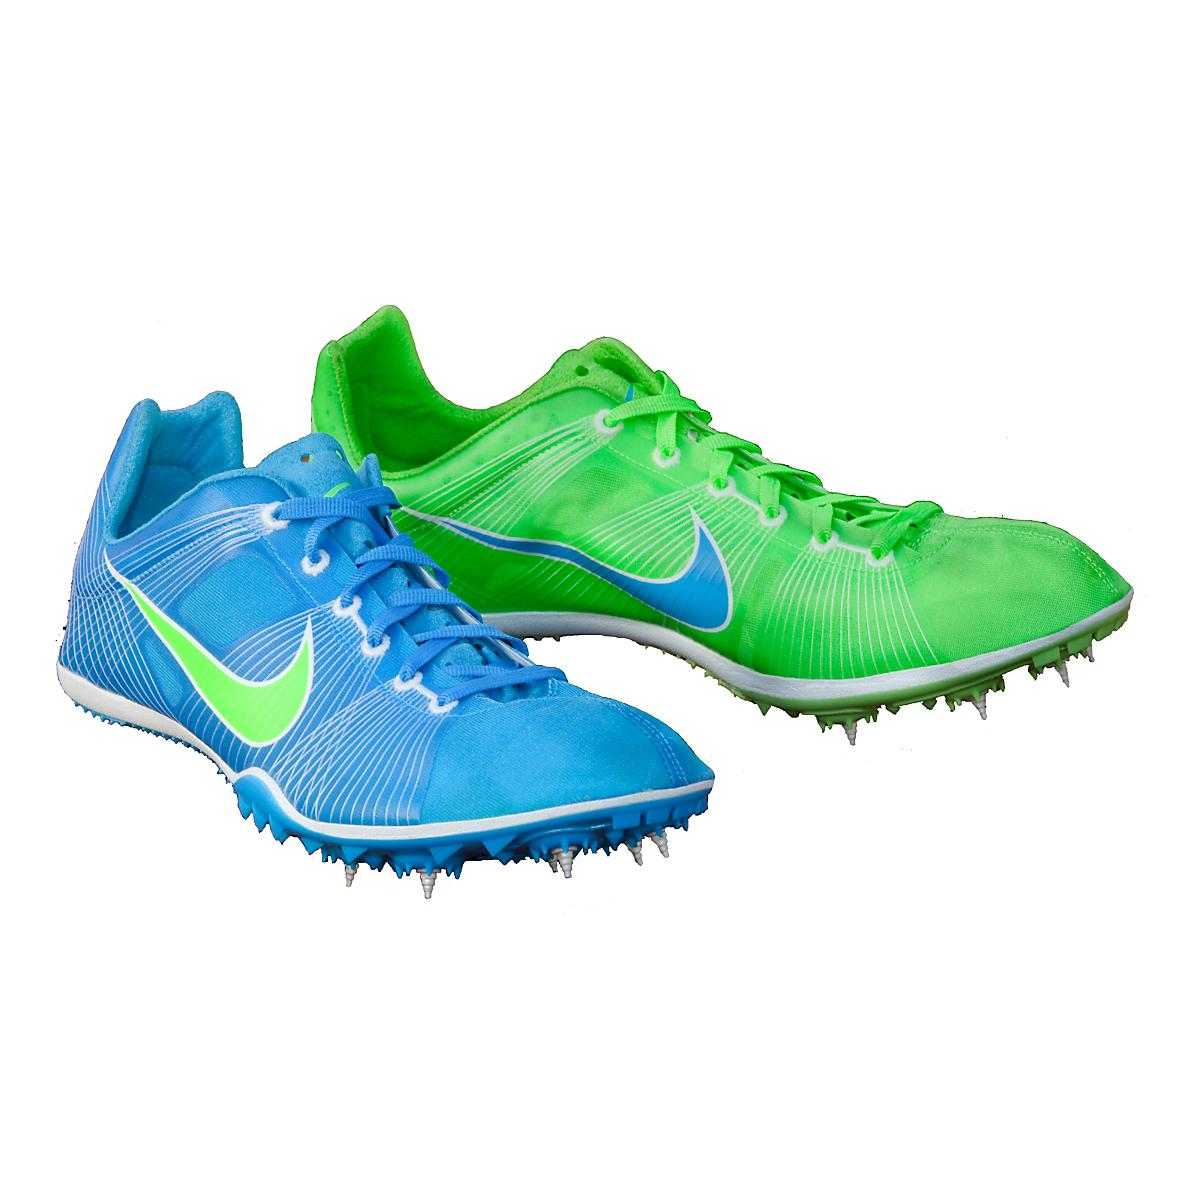 Bombero Aplicando ruido  Mens Nike Zoom Victory Track and Field Shoe at Road Runner Sports